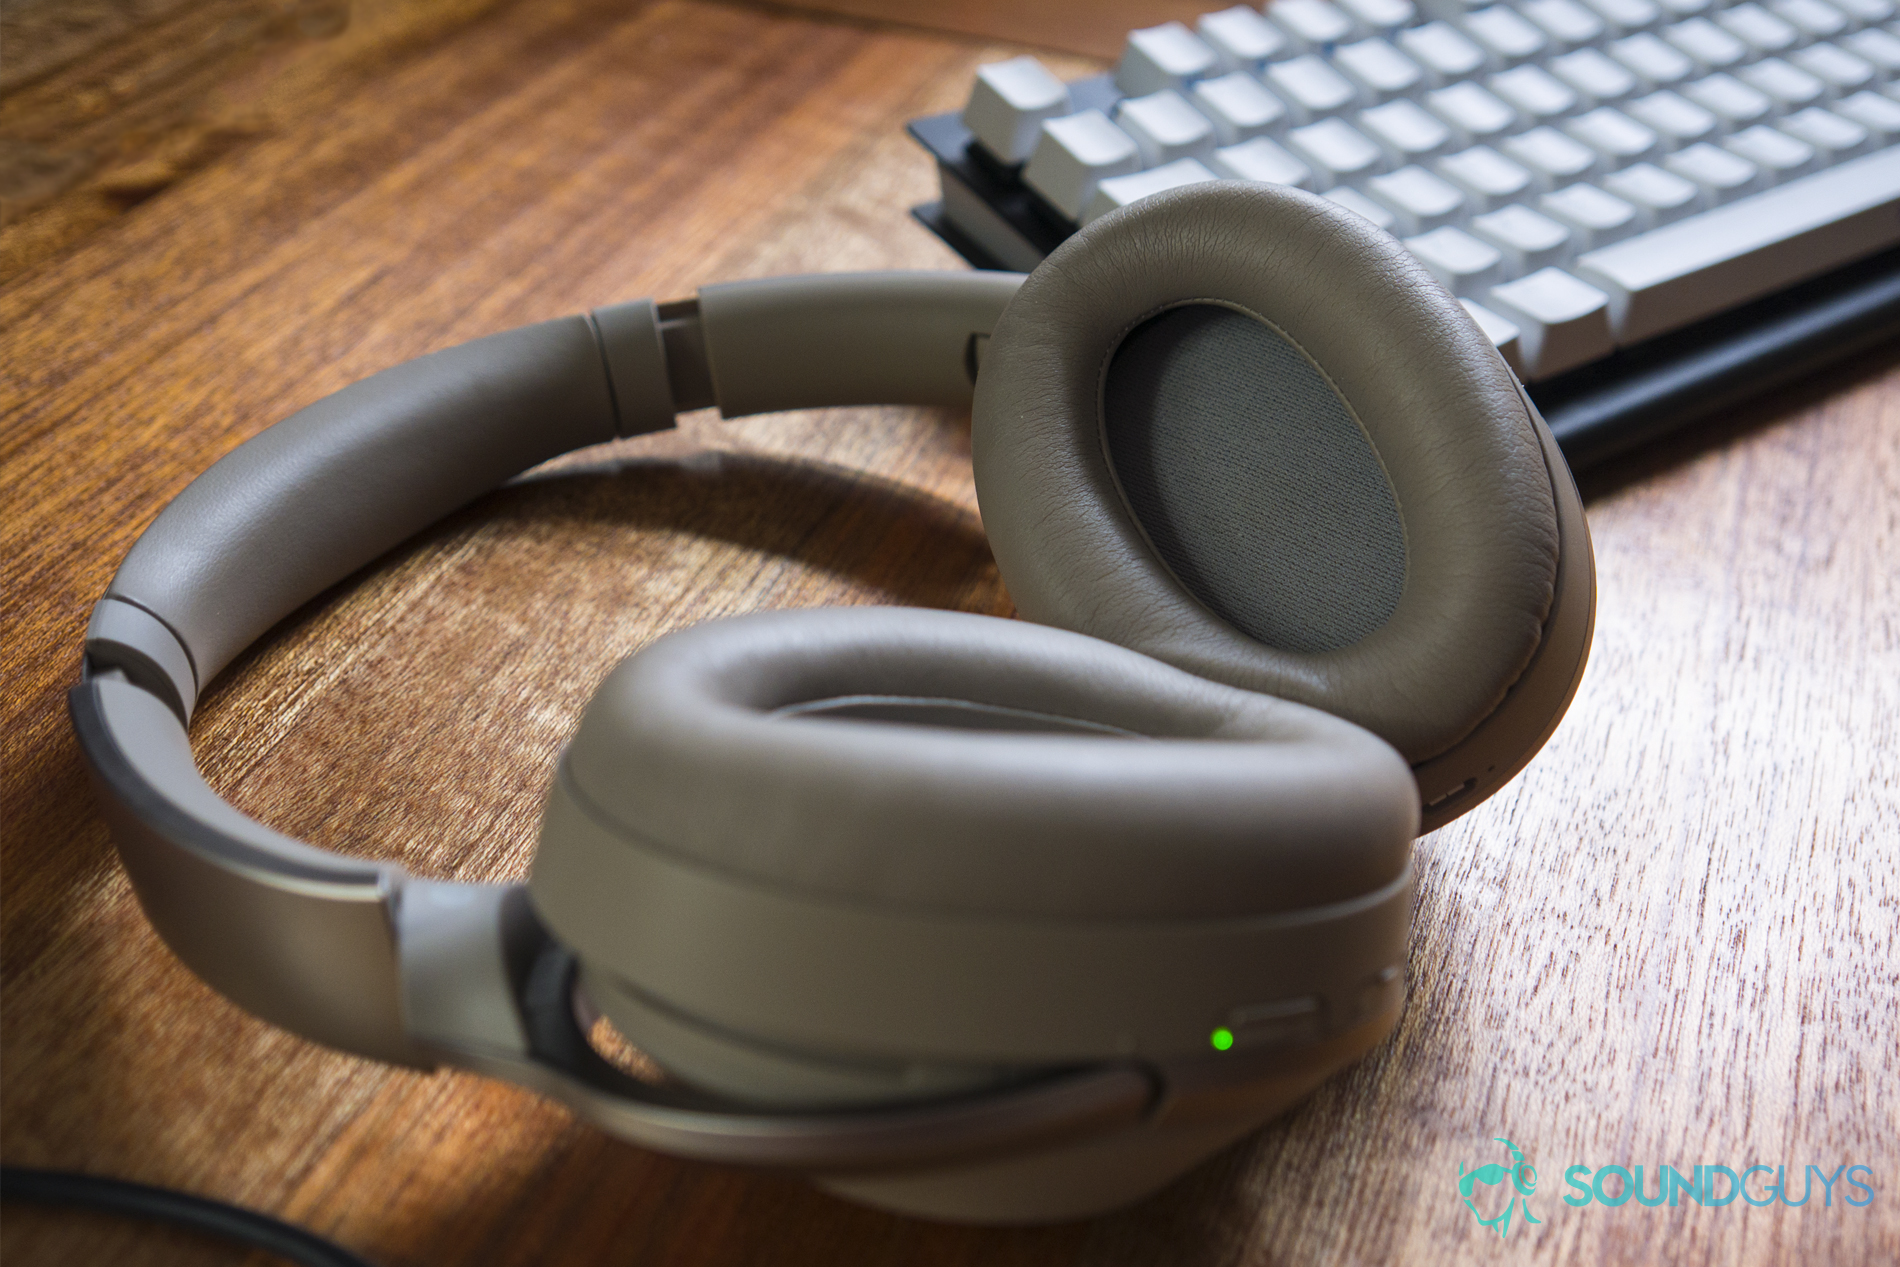 Sony Wh 1000xm2 Review Soundguys Headphone Jack Wiring A Pair Of Photo The 1000x M2 Wireless Bluetooth Headphones On Their Backs